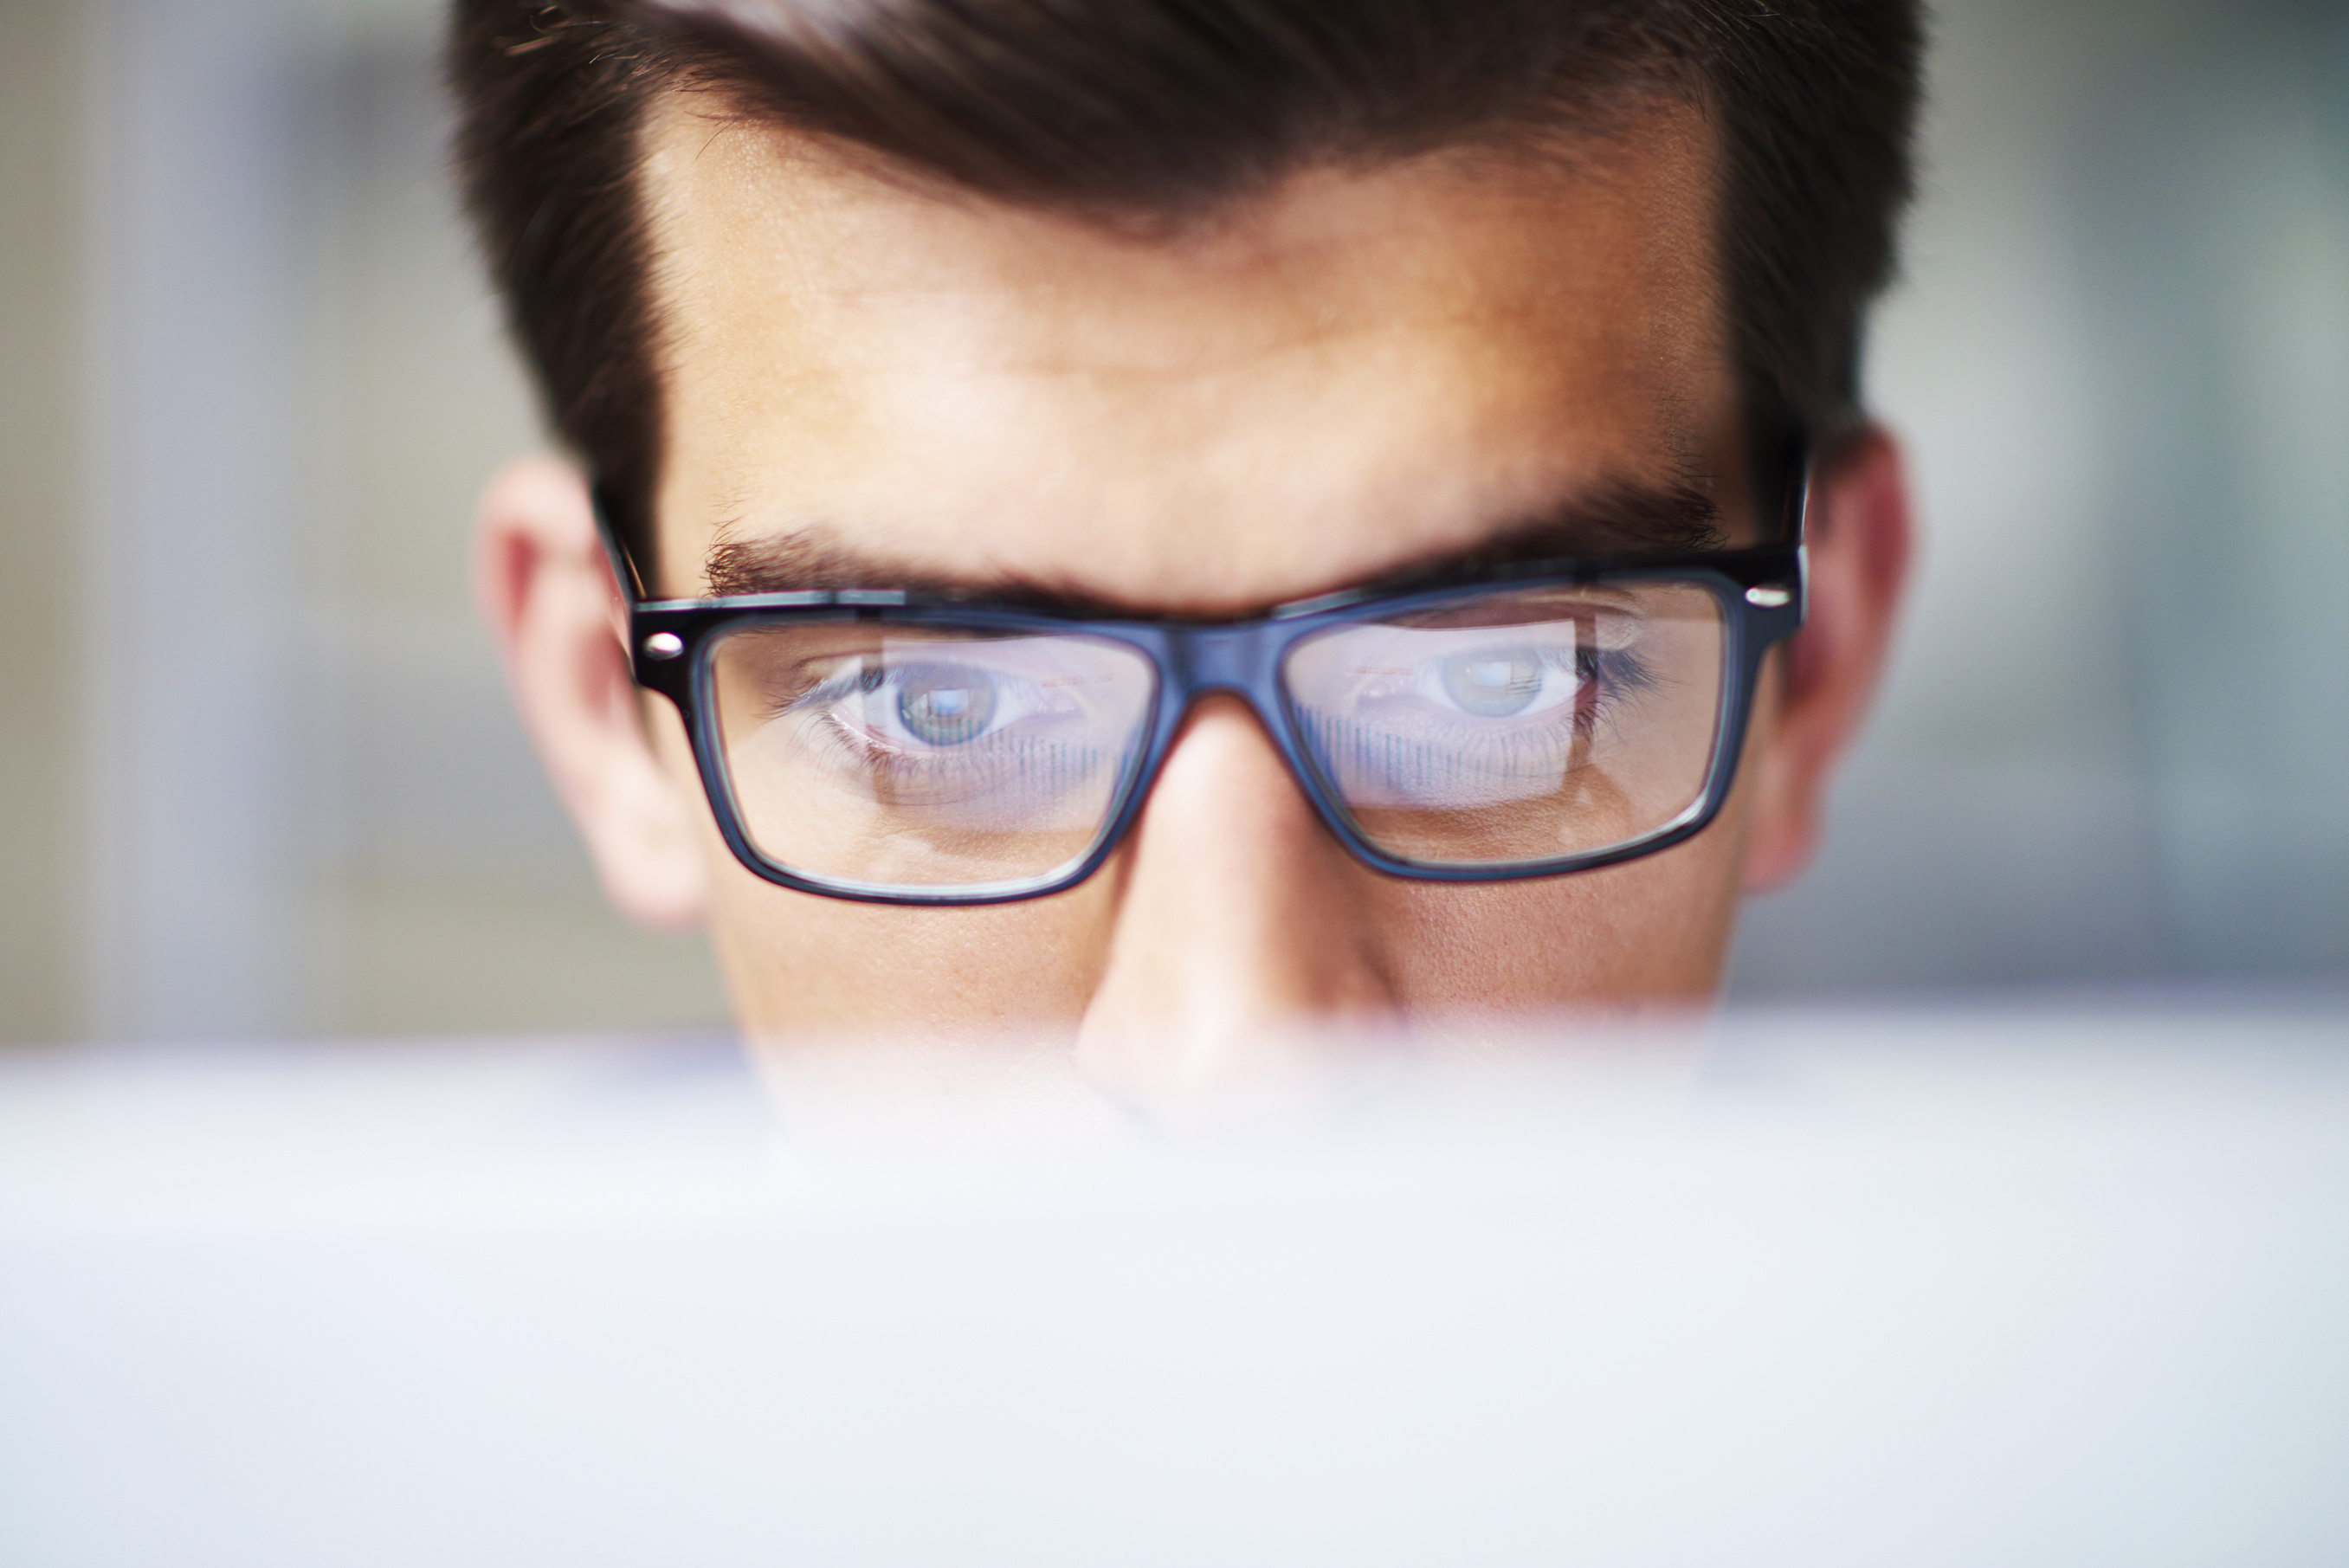 Men's eyes on computer screen